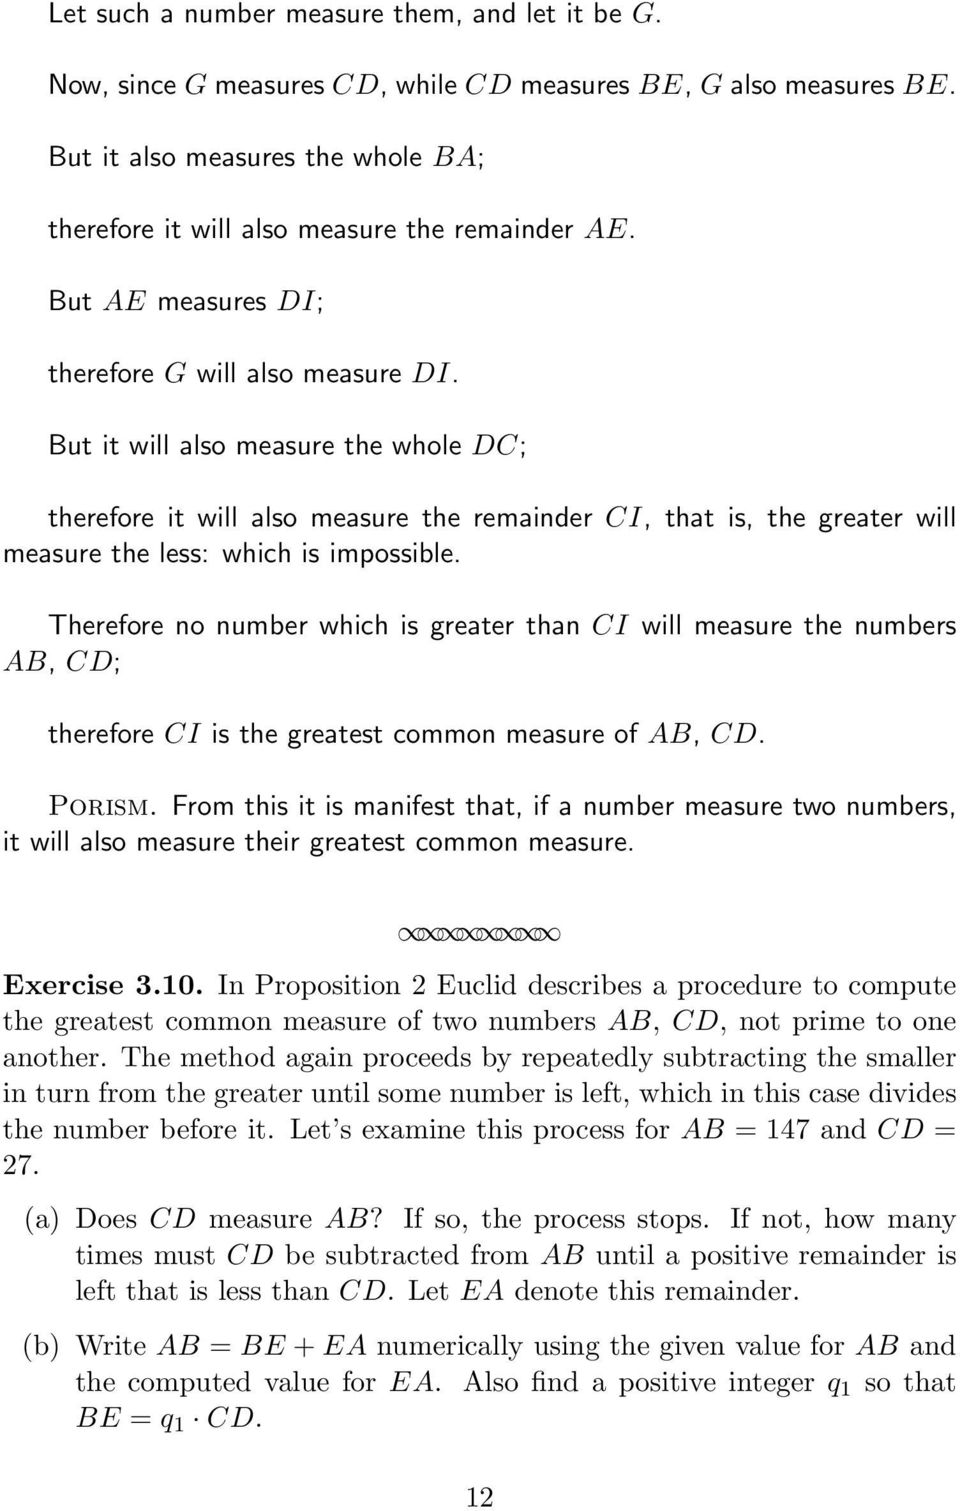 But it will also measure the whole DC; therefore it will also measure the remainder CI, that is, the greater will measure the less: which is impossible.